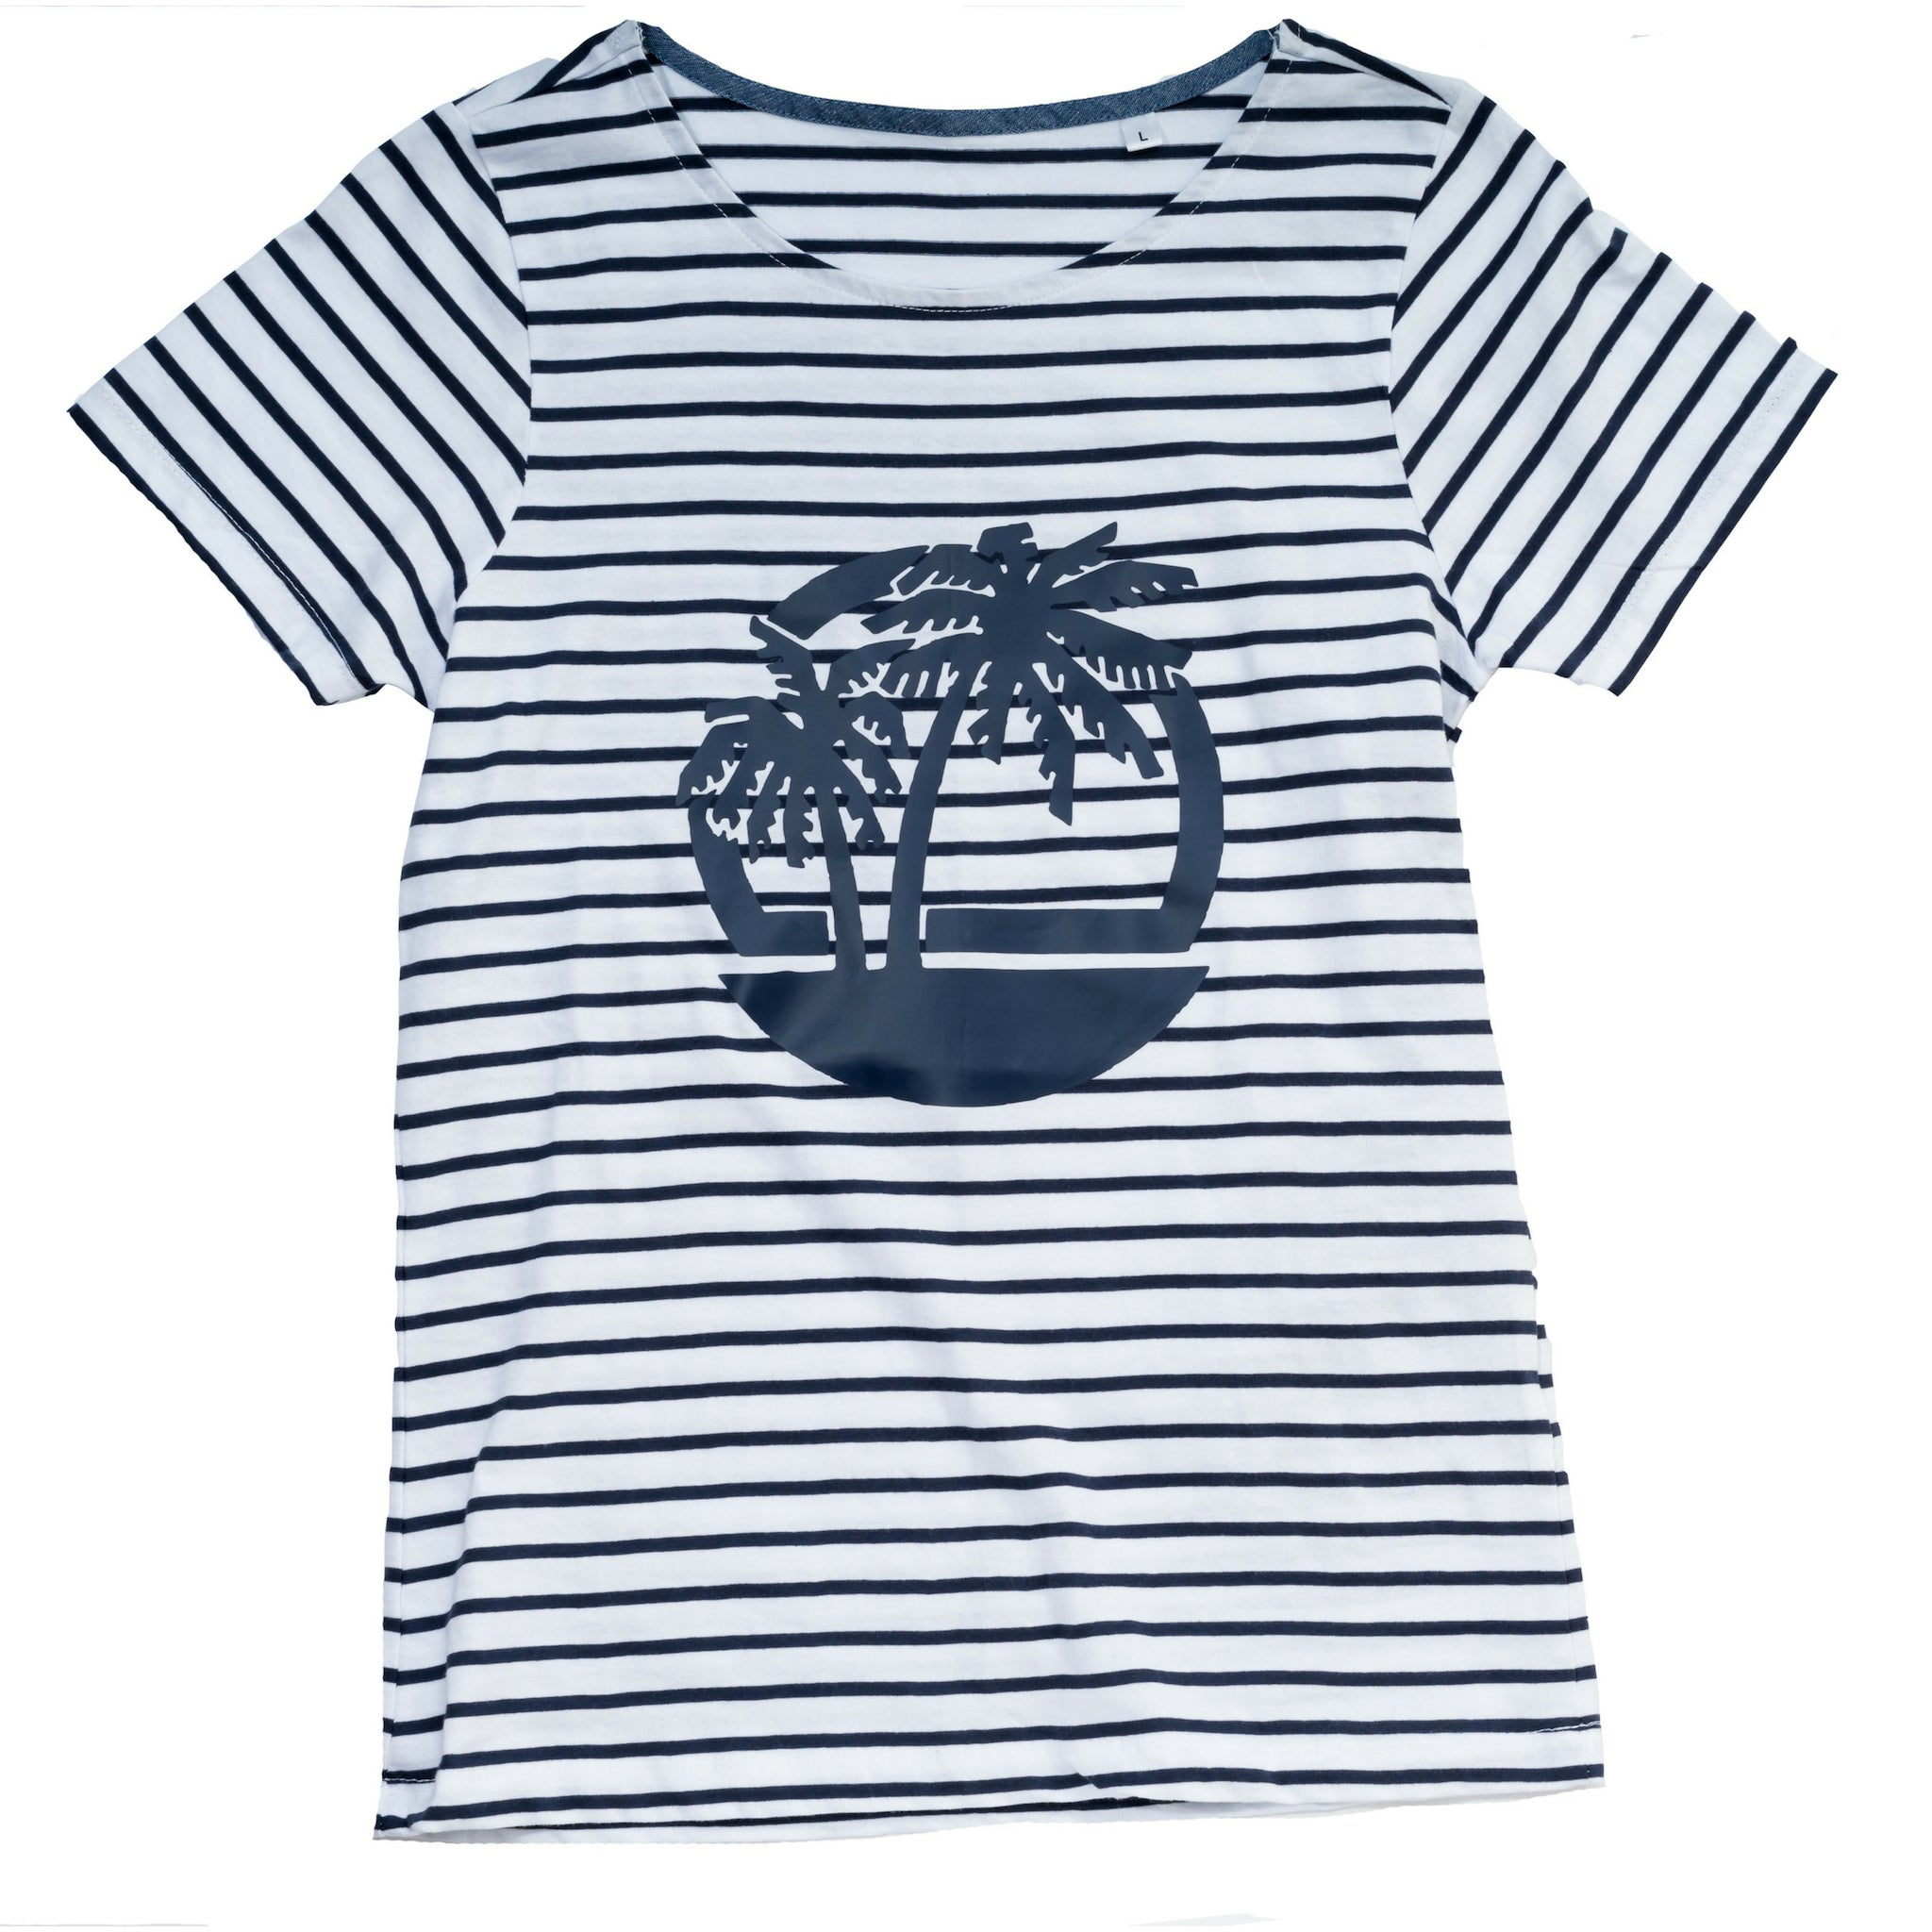 Striped tshirt with palm beach motif